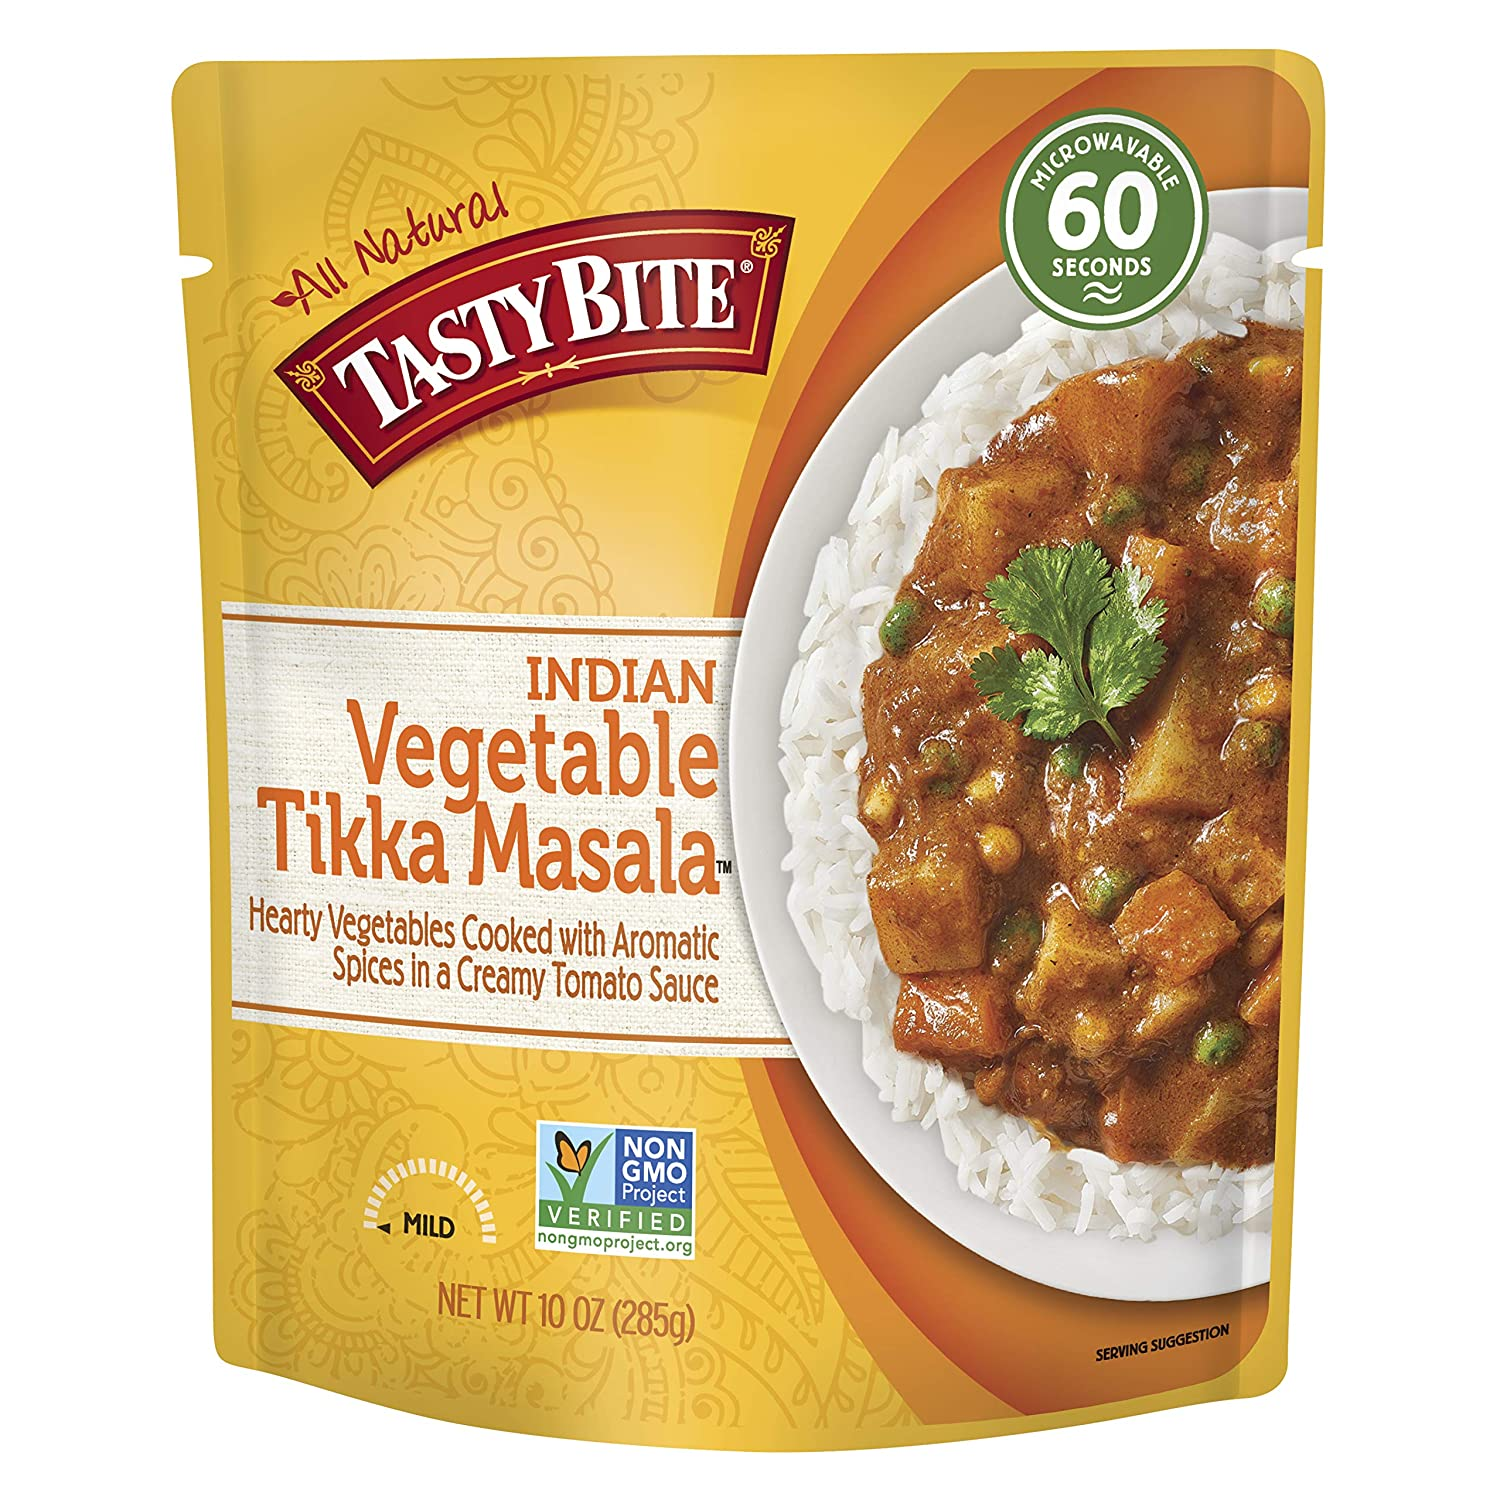 Tasty Bite Indian Entree Vegetable Tikka Masala 10 Ounce (Pack of 6), Fully Cooked Indian Entrée with Vegetables & Aromatic Spices in Creamy Tomato Sauce, Vegetarian, Gluten Free, Ready to Eat